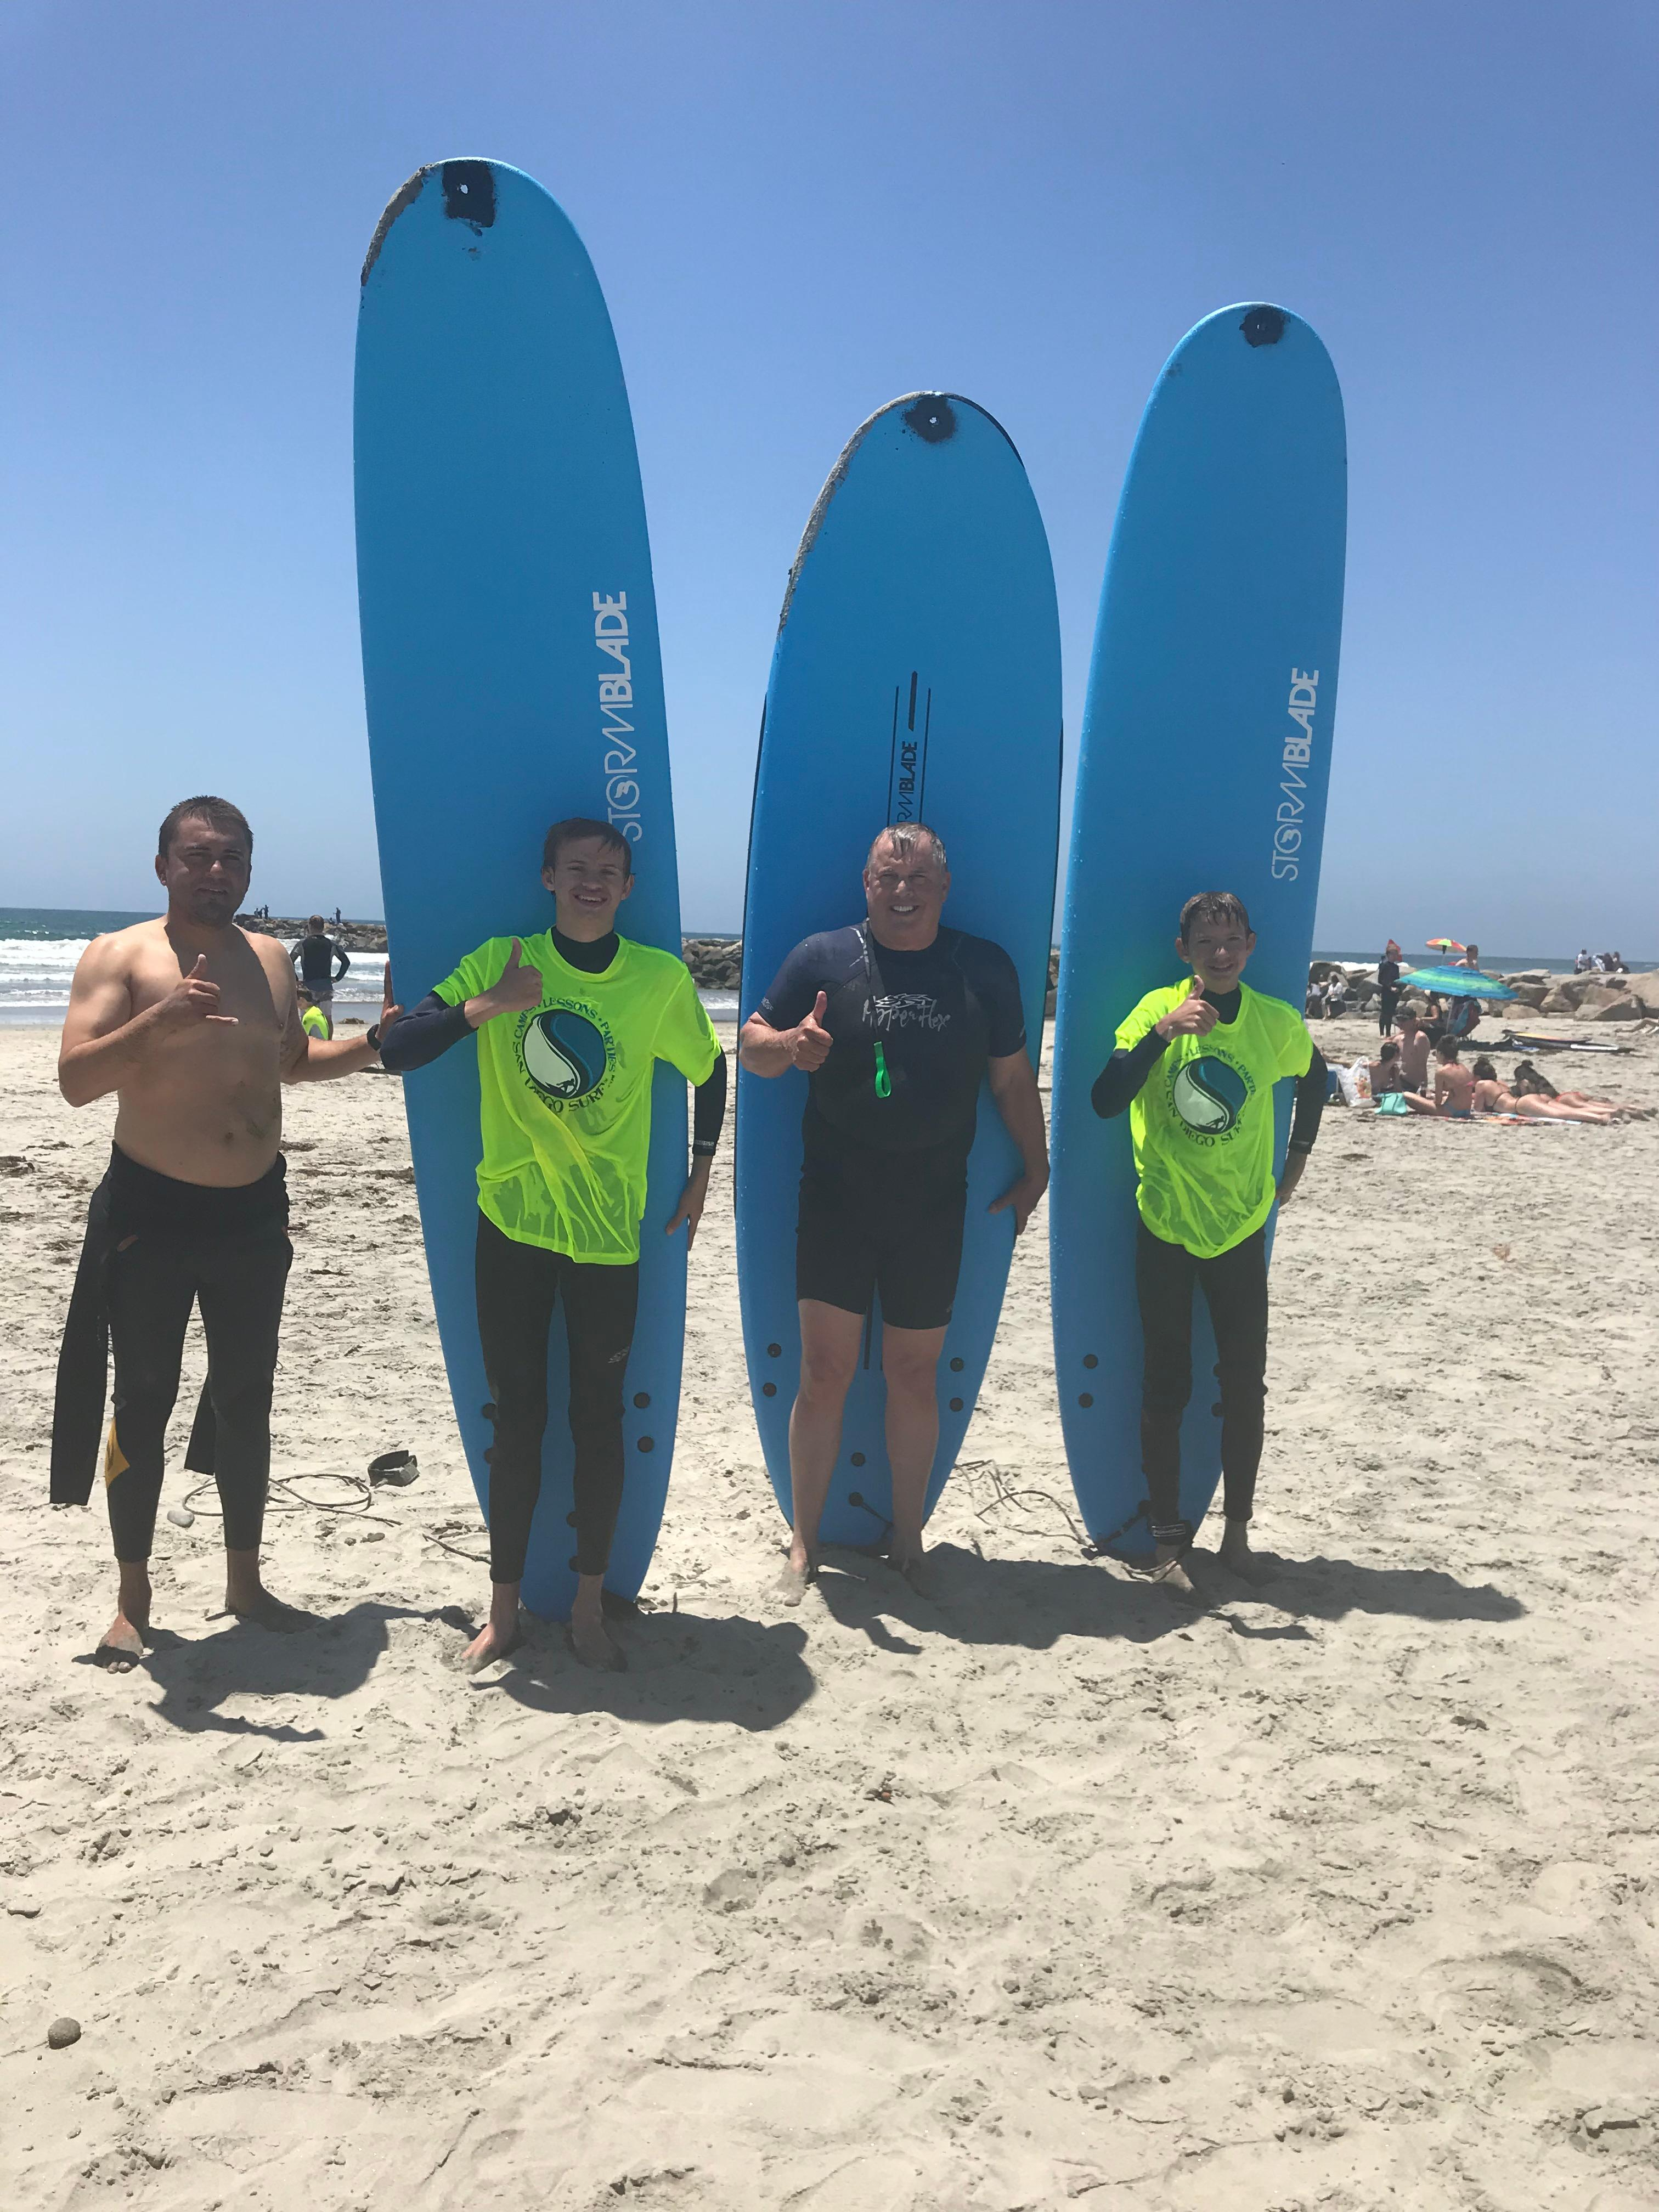 DR. Paul and grandsons bonded and have a great time. Book your experience at sandiegosurf.com